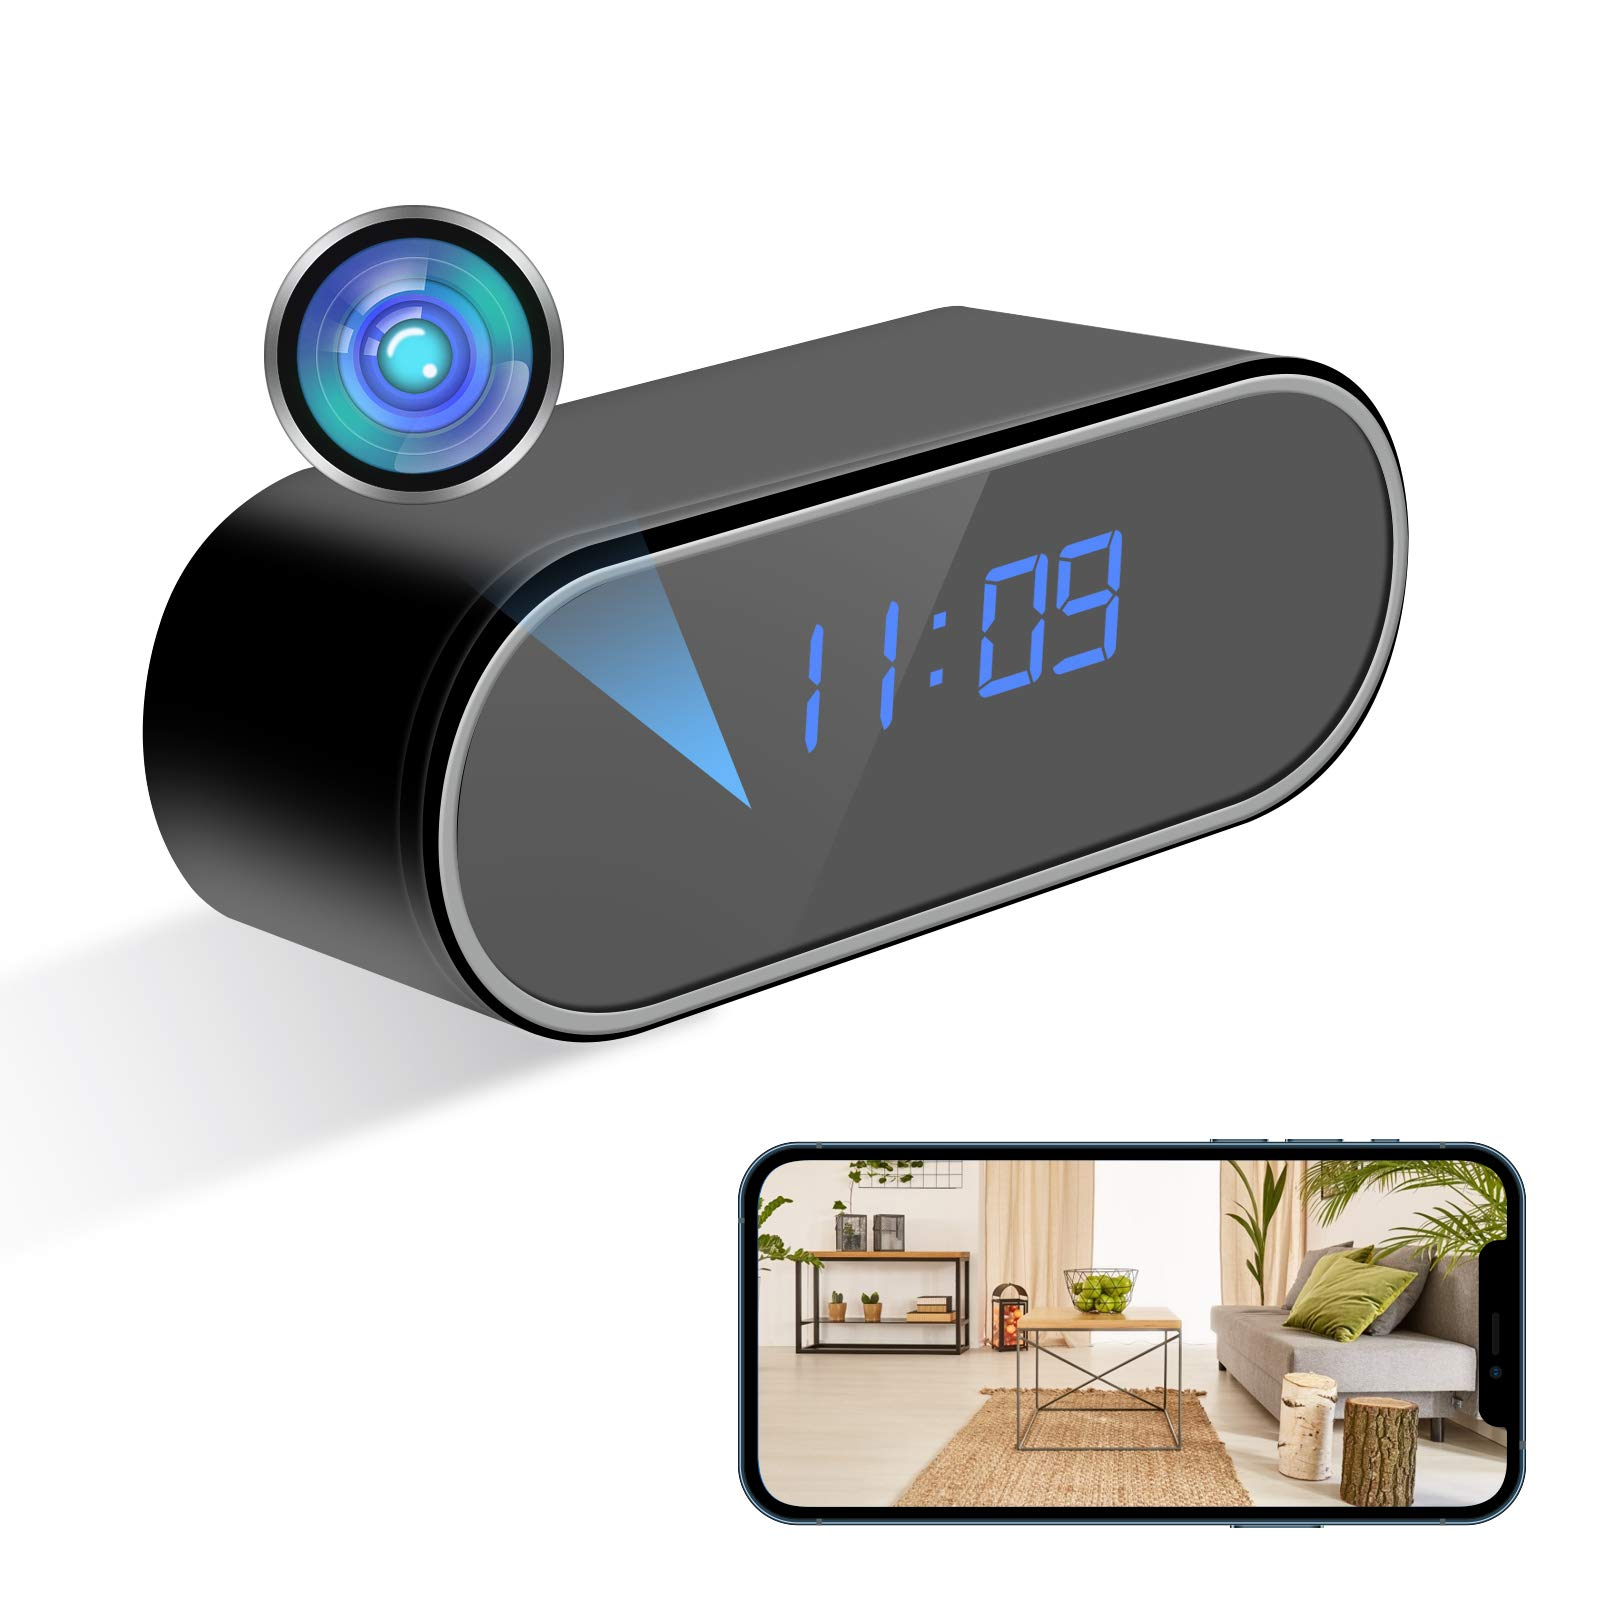 KAMRE 1080P WiFi Clock Camera Video Recorder with Night Vision and Motion Detection, Indoor Wireless Security Camera for Home Security/Baby Monitor/Pets